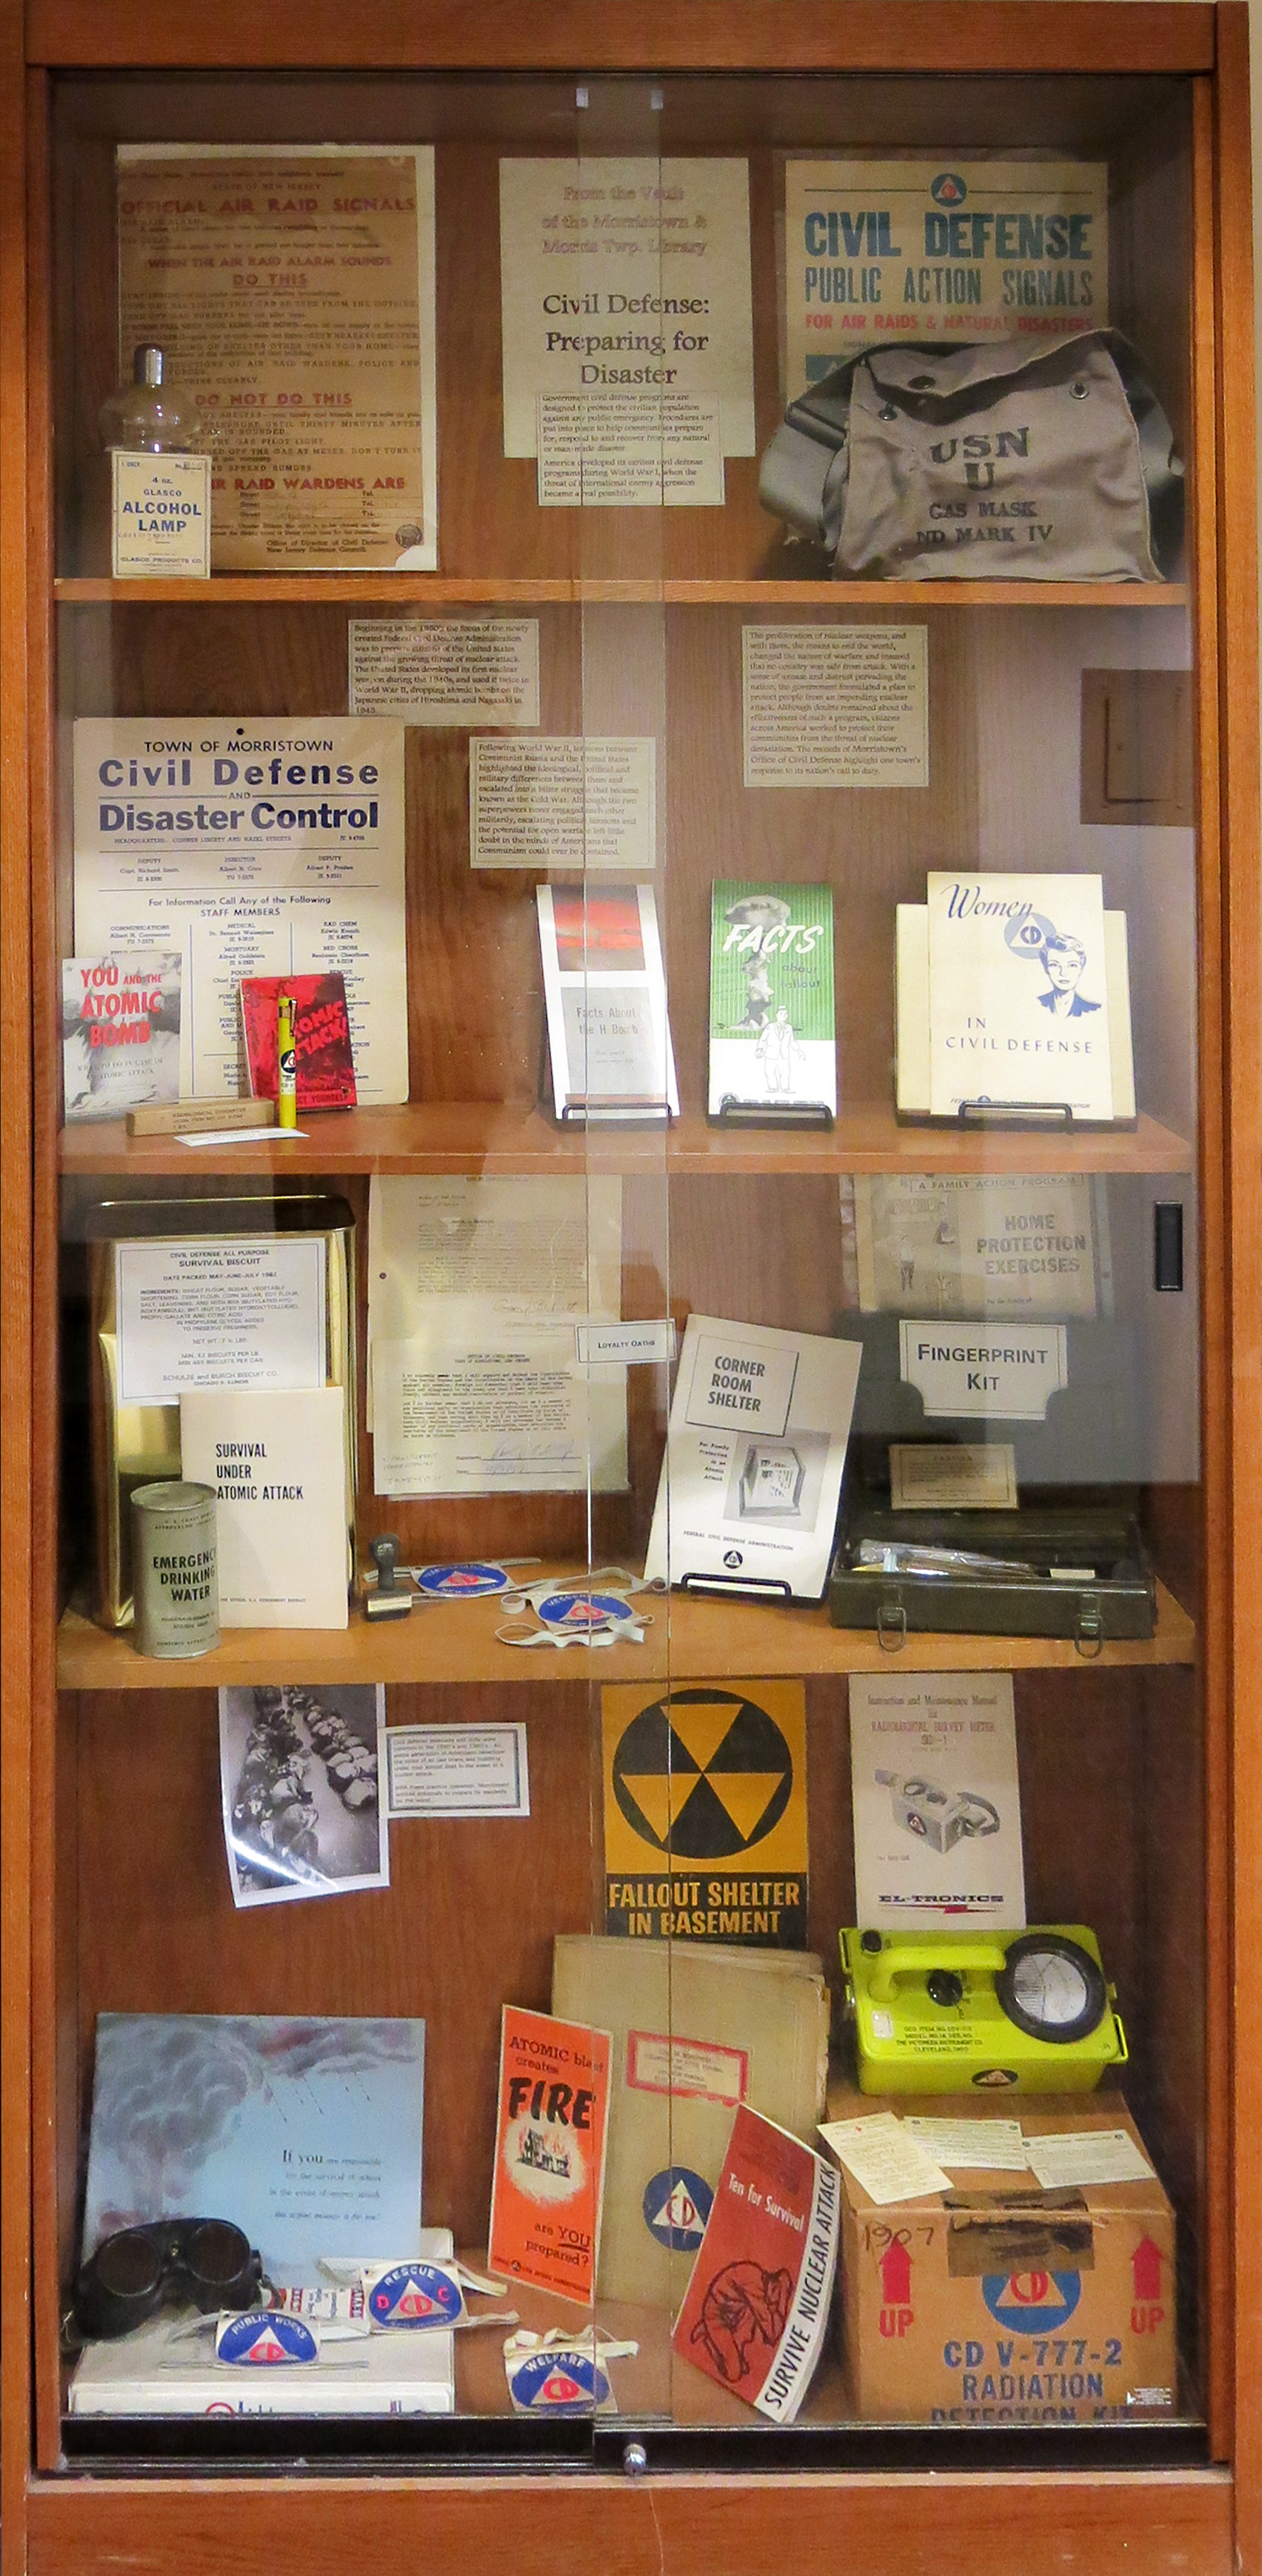 Display case with civil defense items